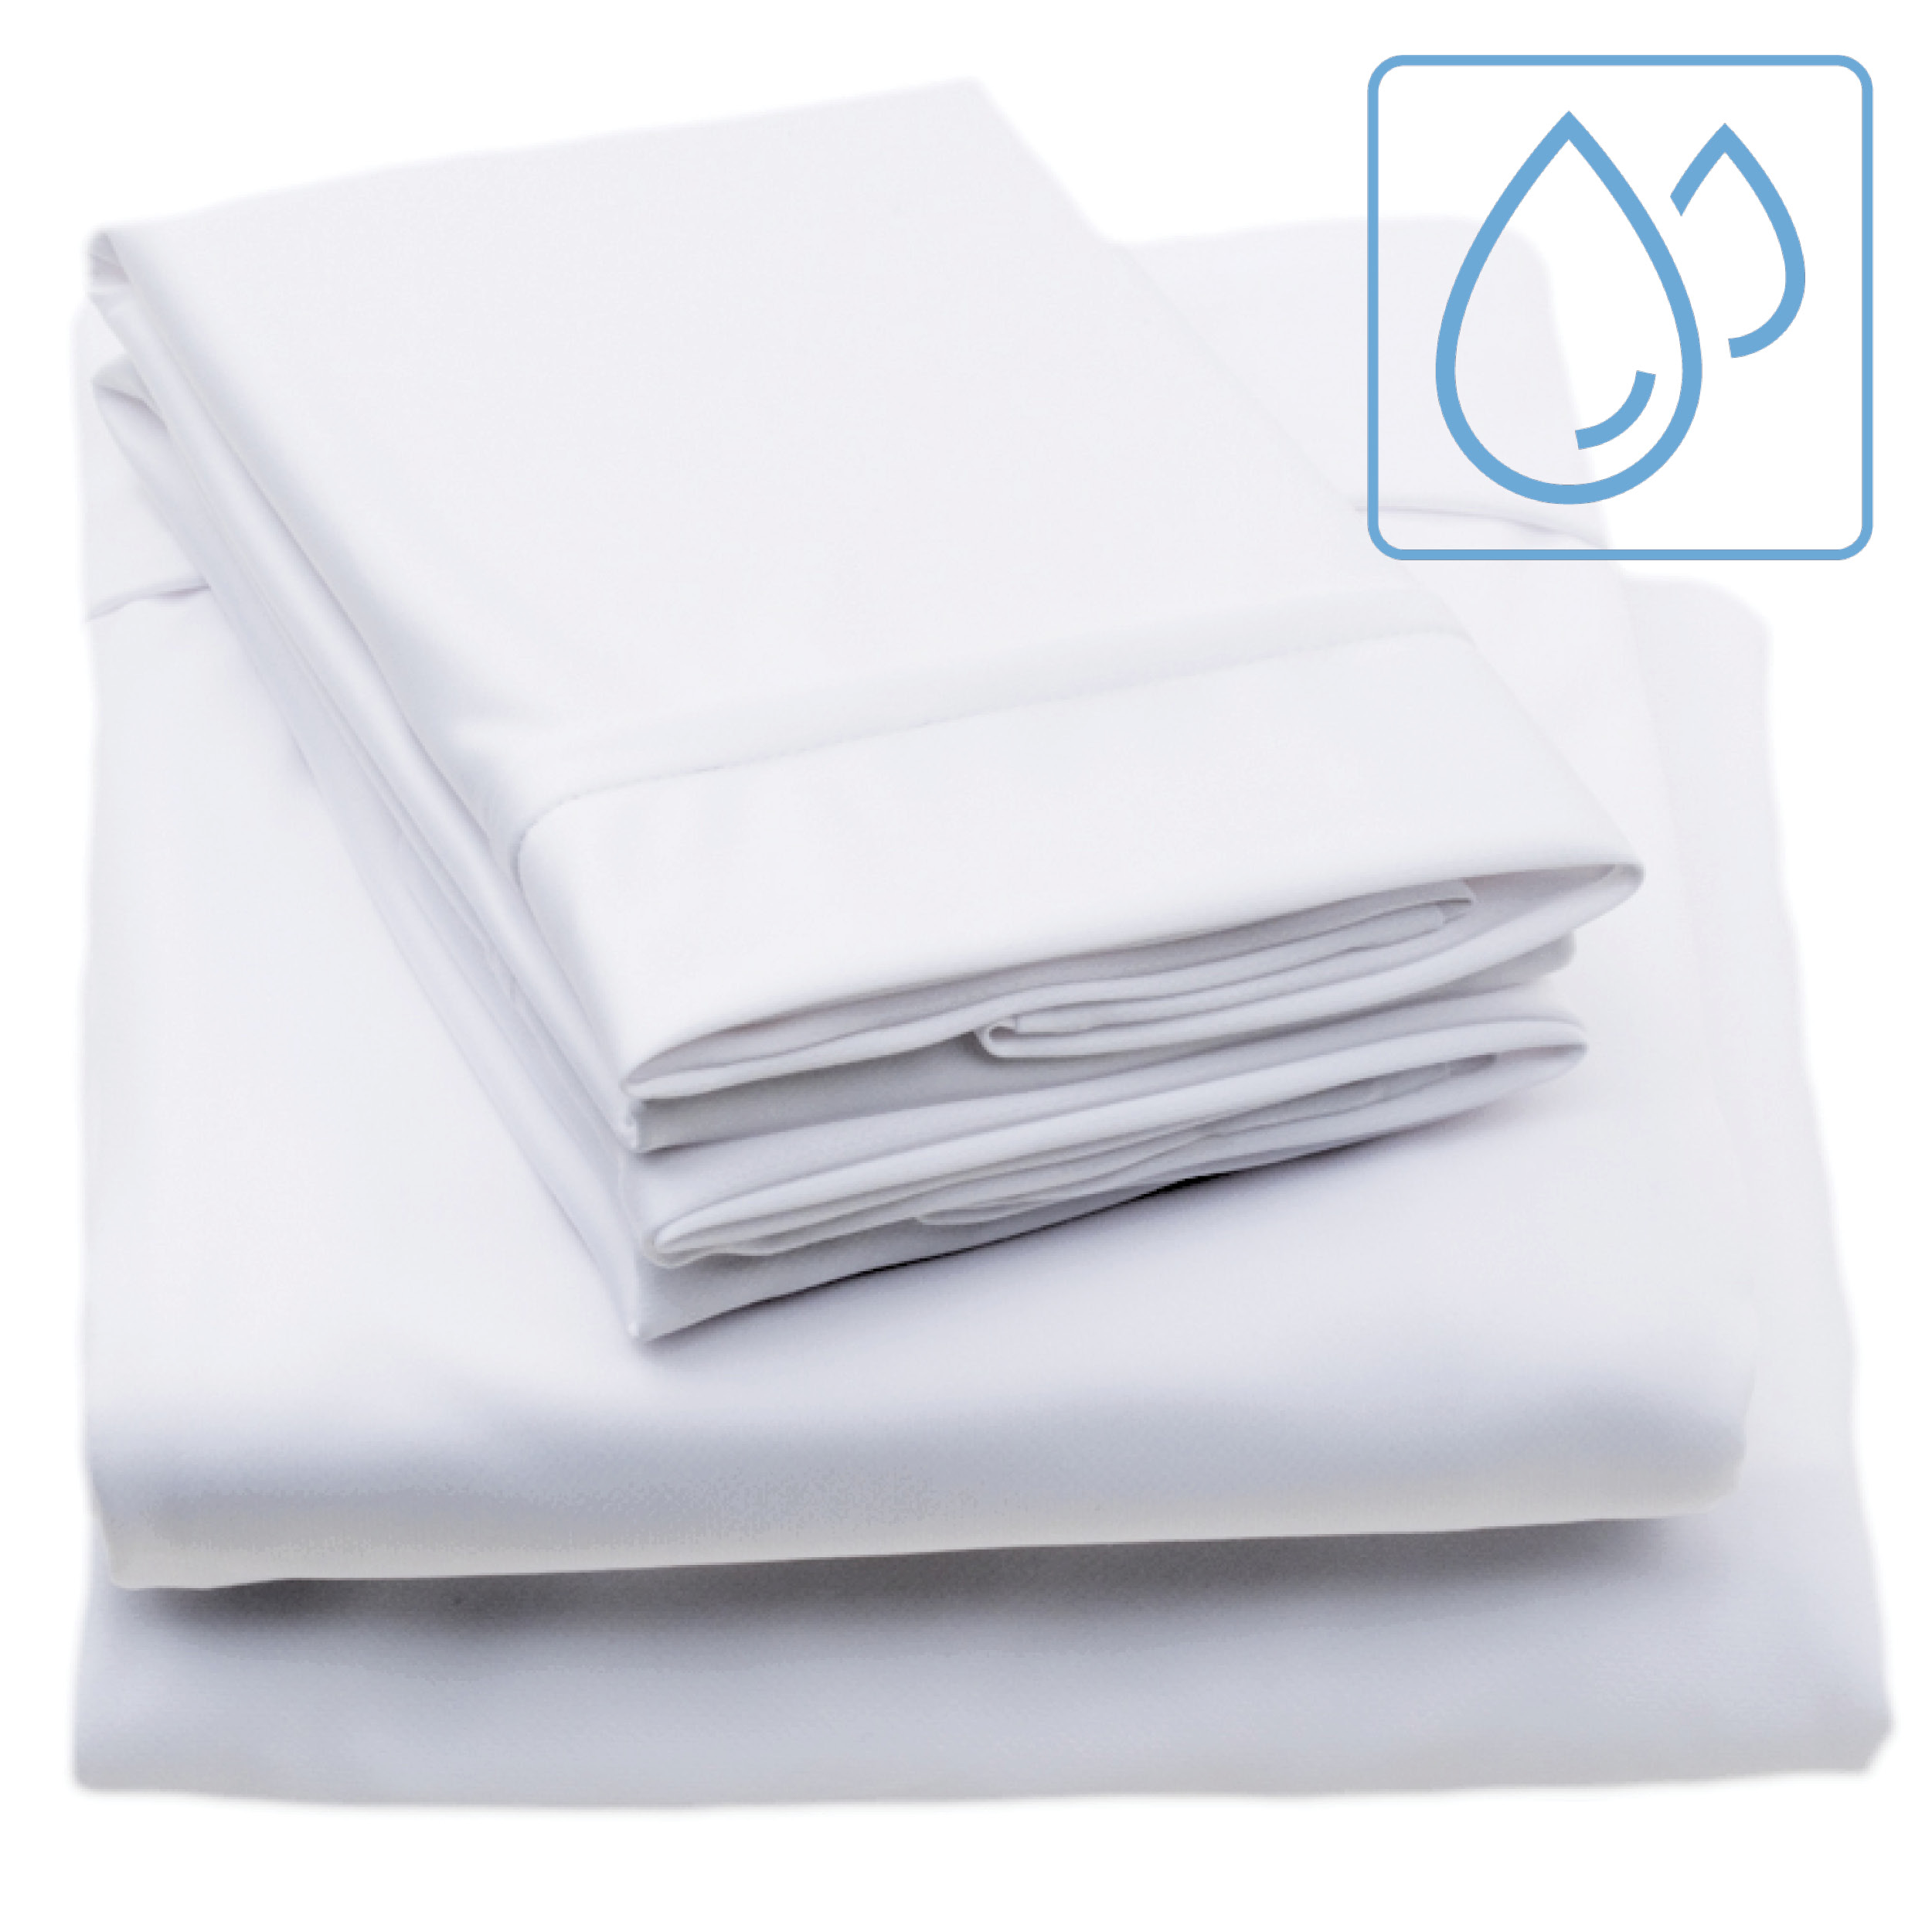 moisture wicking white bed sheet stack with blue water droplets